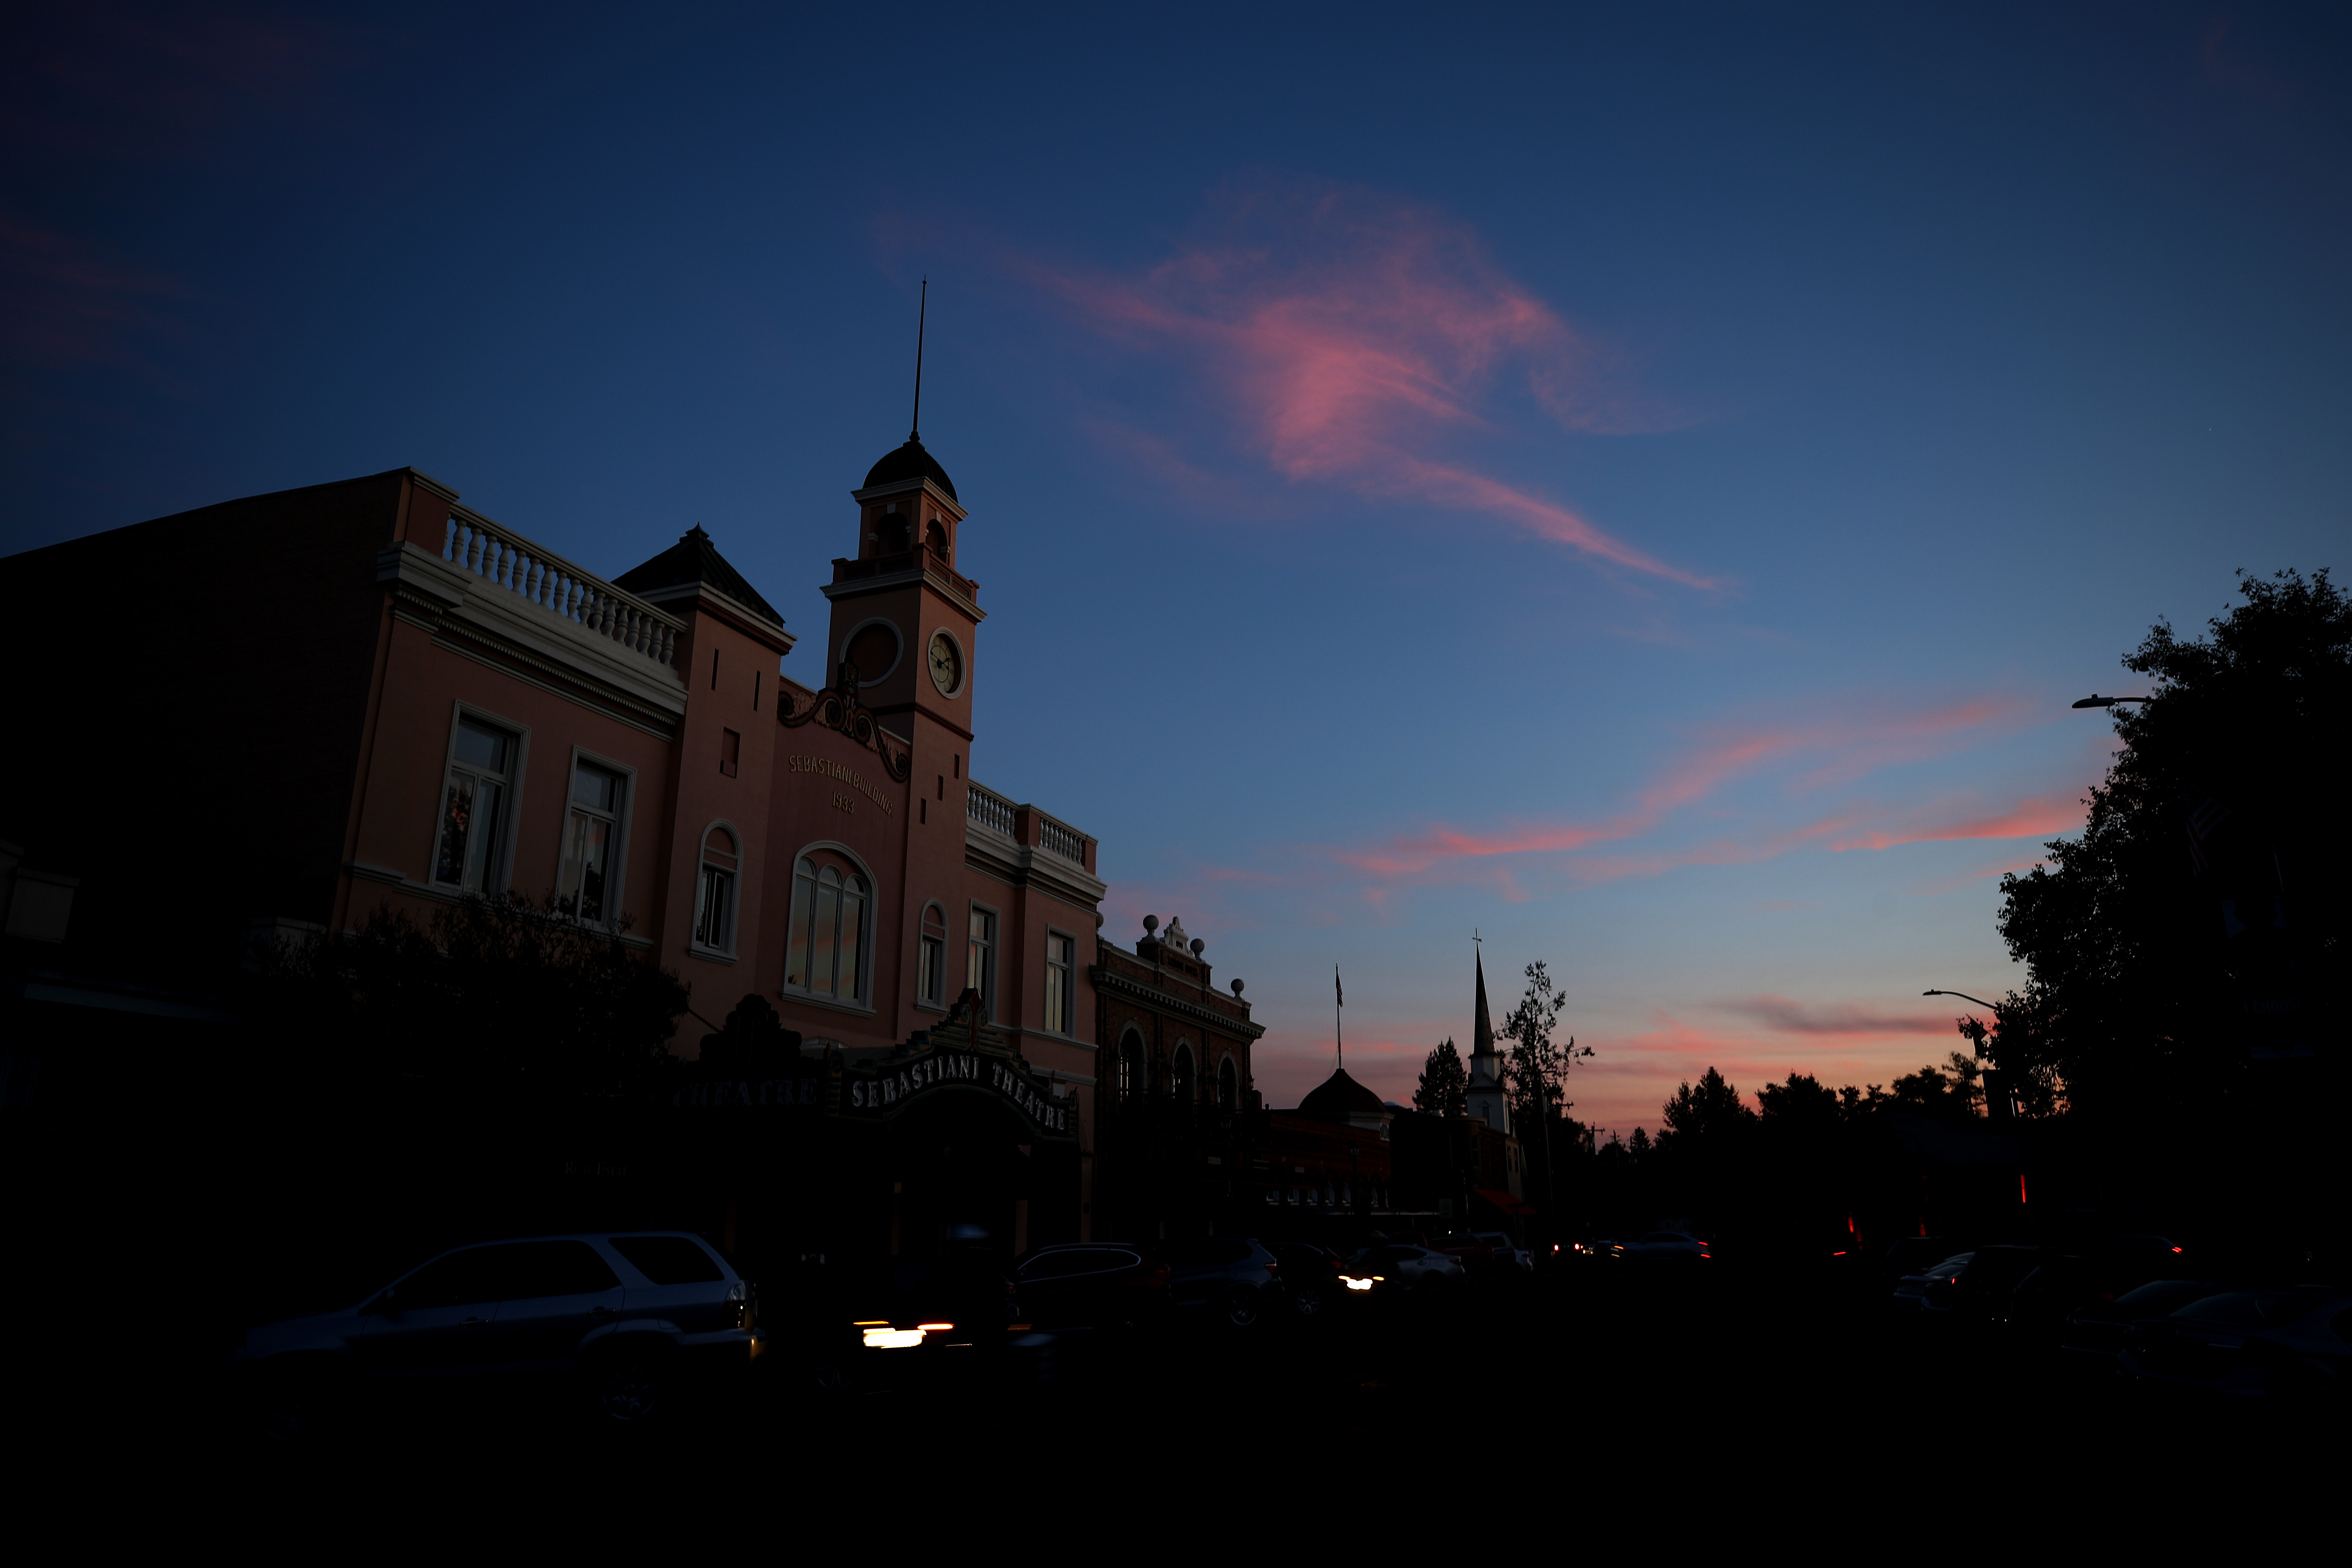 A white building with a steepled tower, surrounded by dark trees, with a sunset in the sky above.